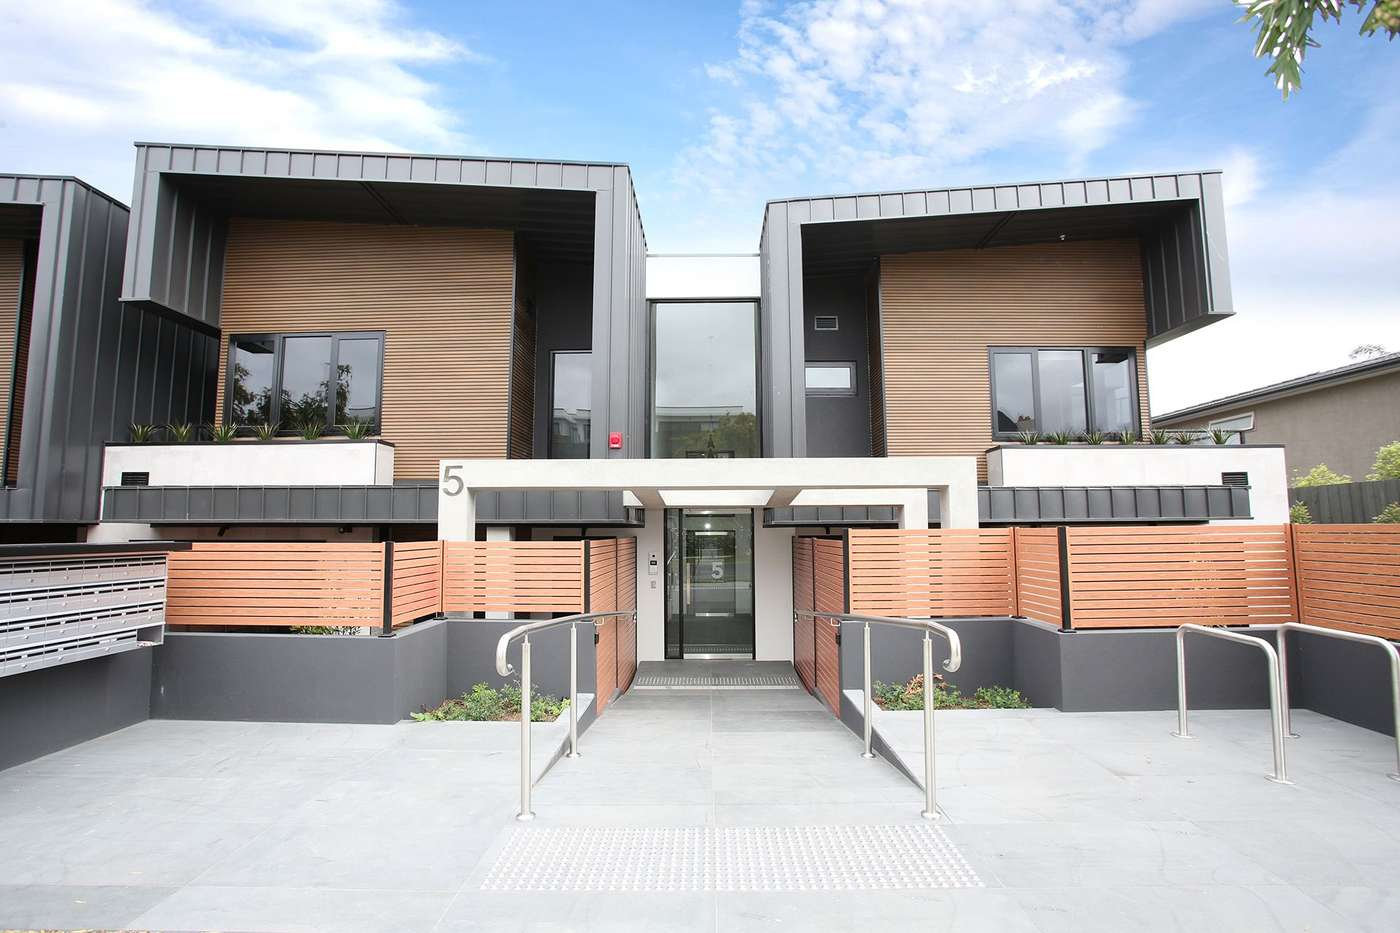 Main view of Homely apartment listing, 7/5 Claire Street, Mckinnon, VIC 3204